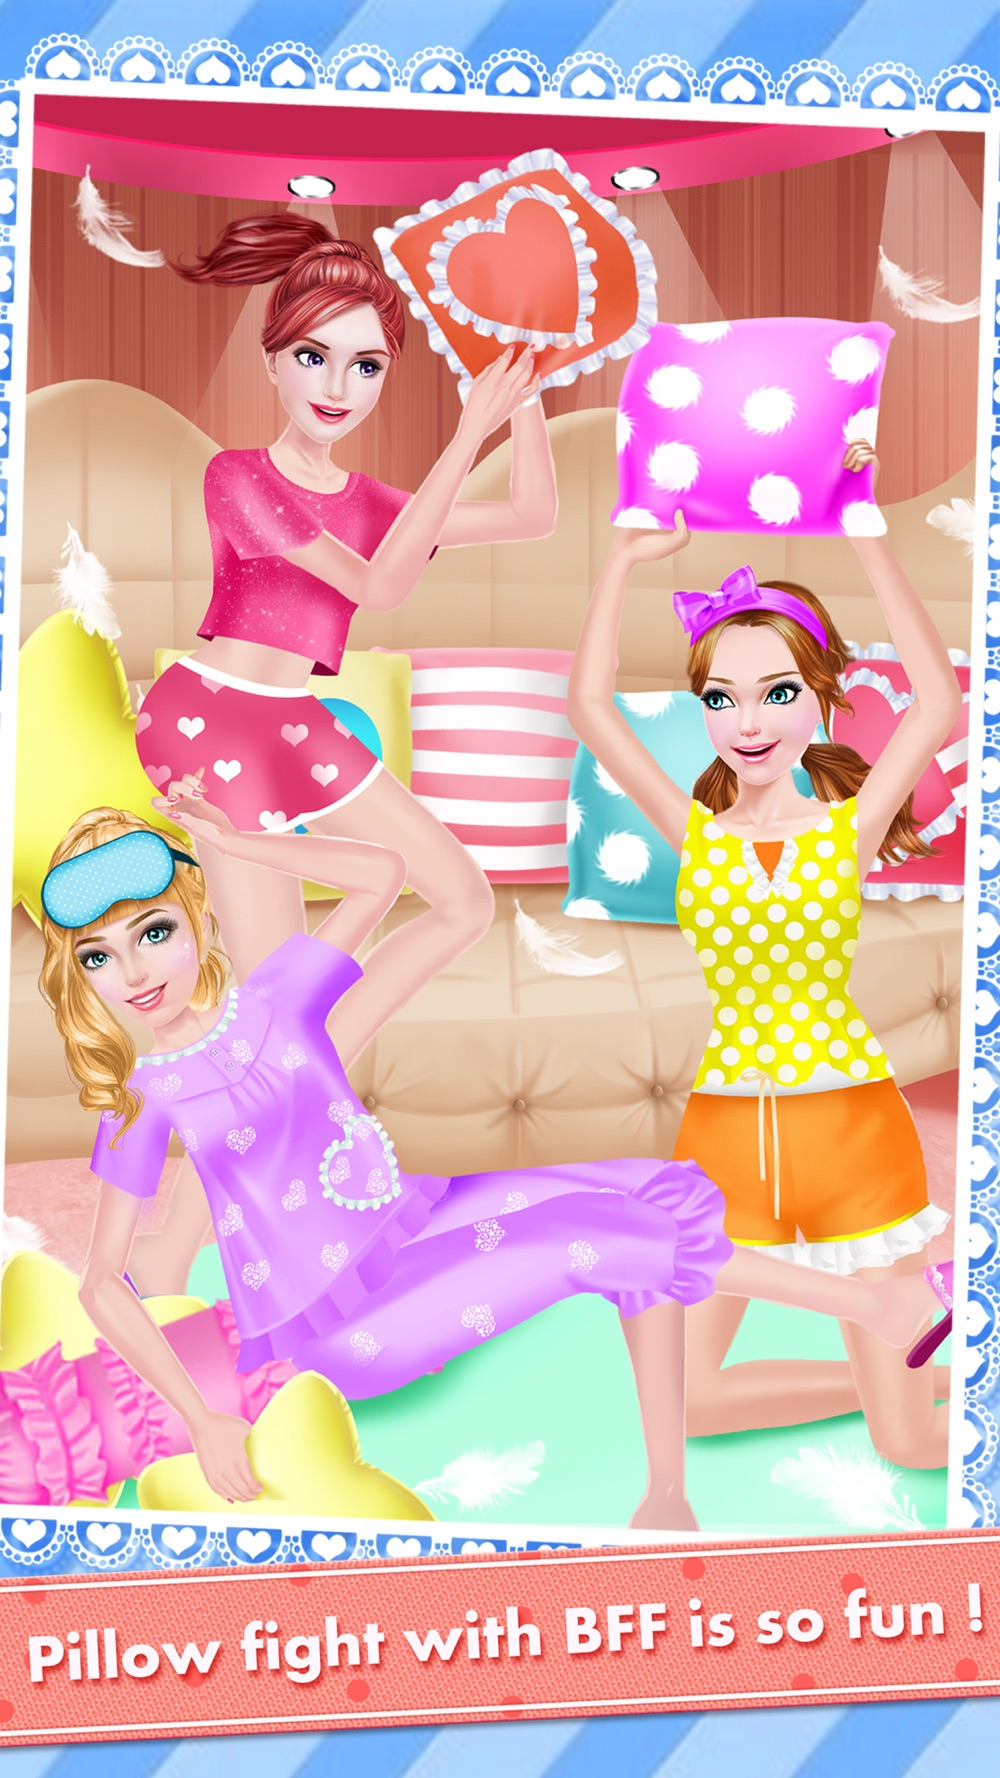 High School PJ Party - Girls Sleepover Salon with Summer SPA, Makeup & Makeover Games hack tool